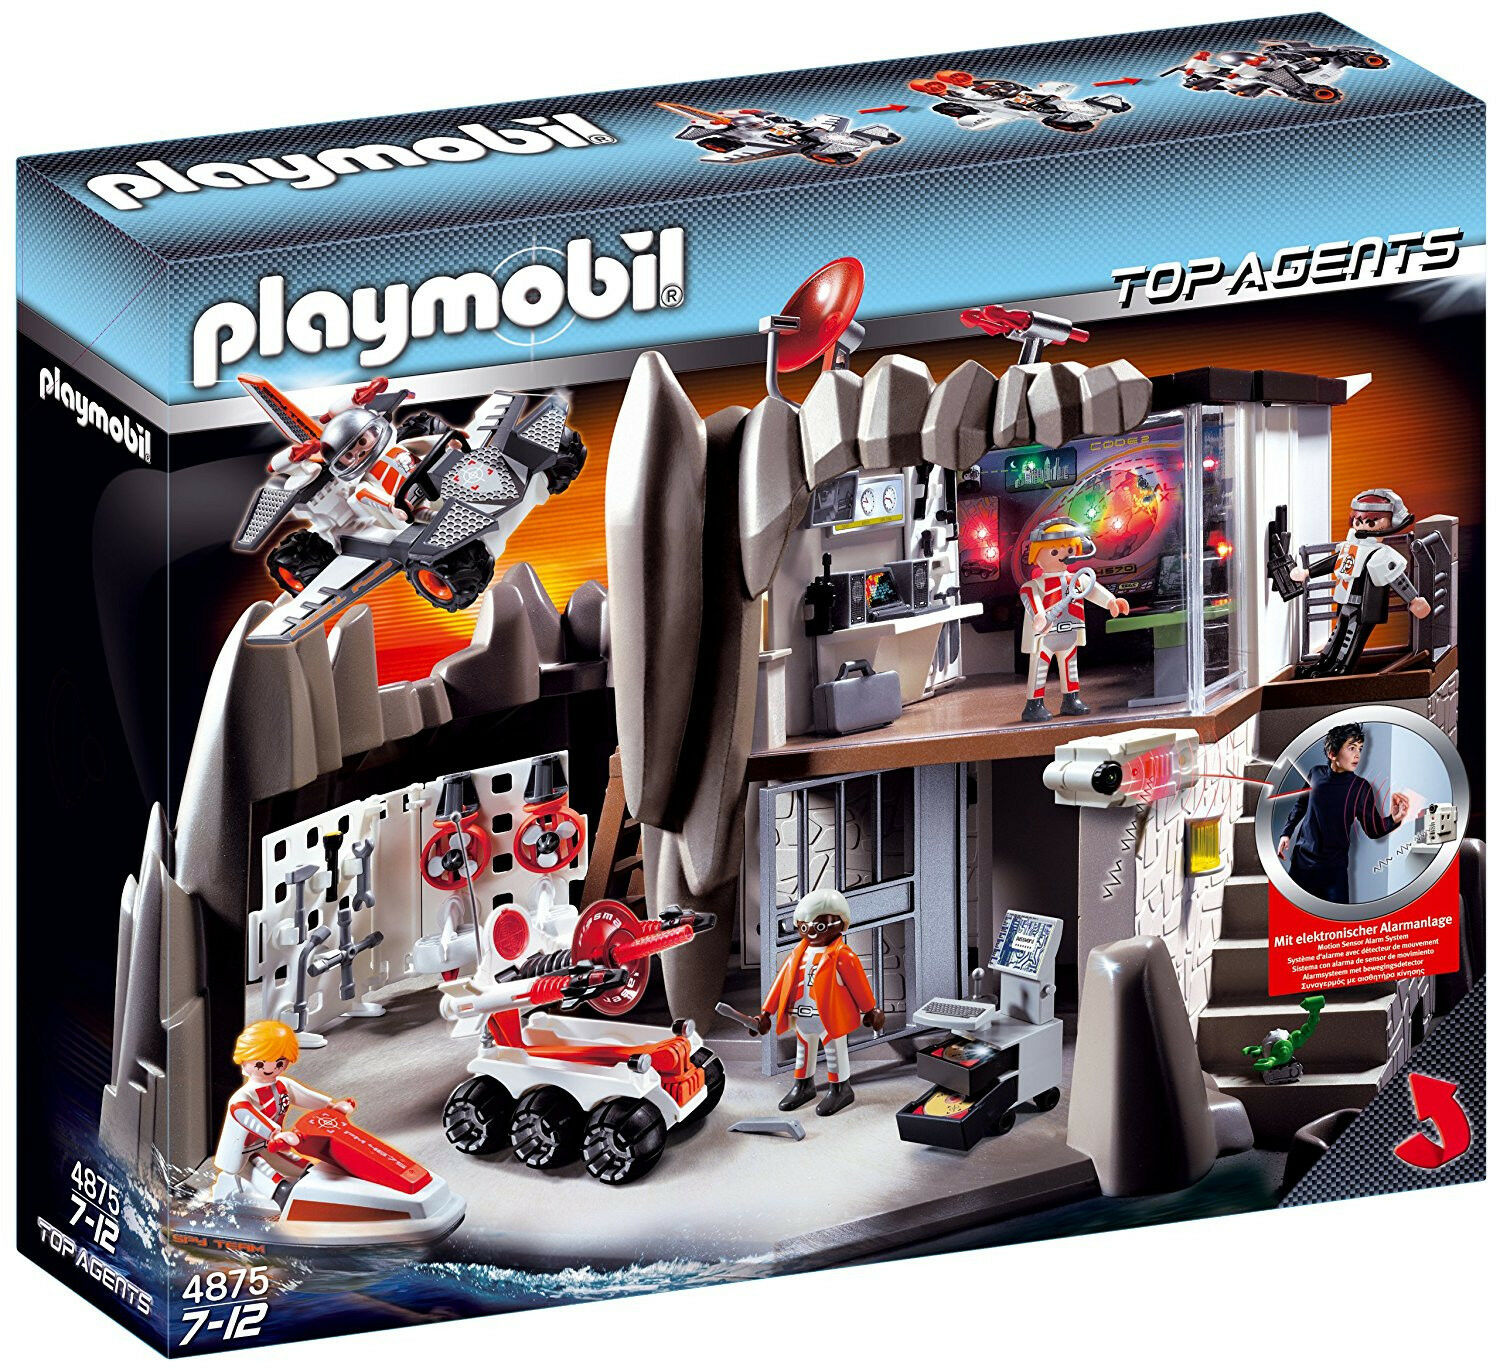 Playmobil 4875 Top Agents Top Agent Headquaters